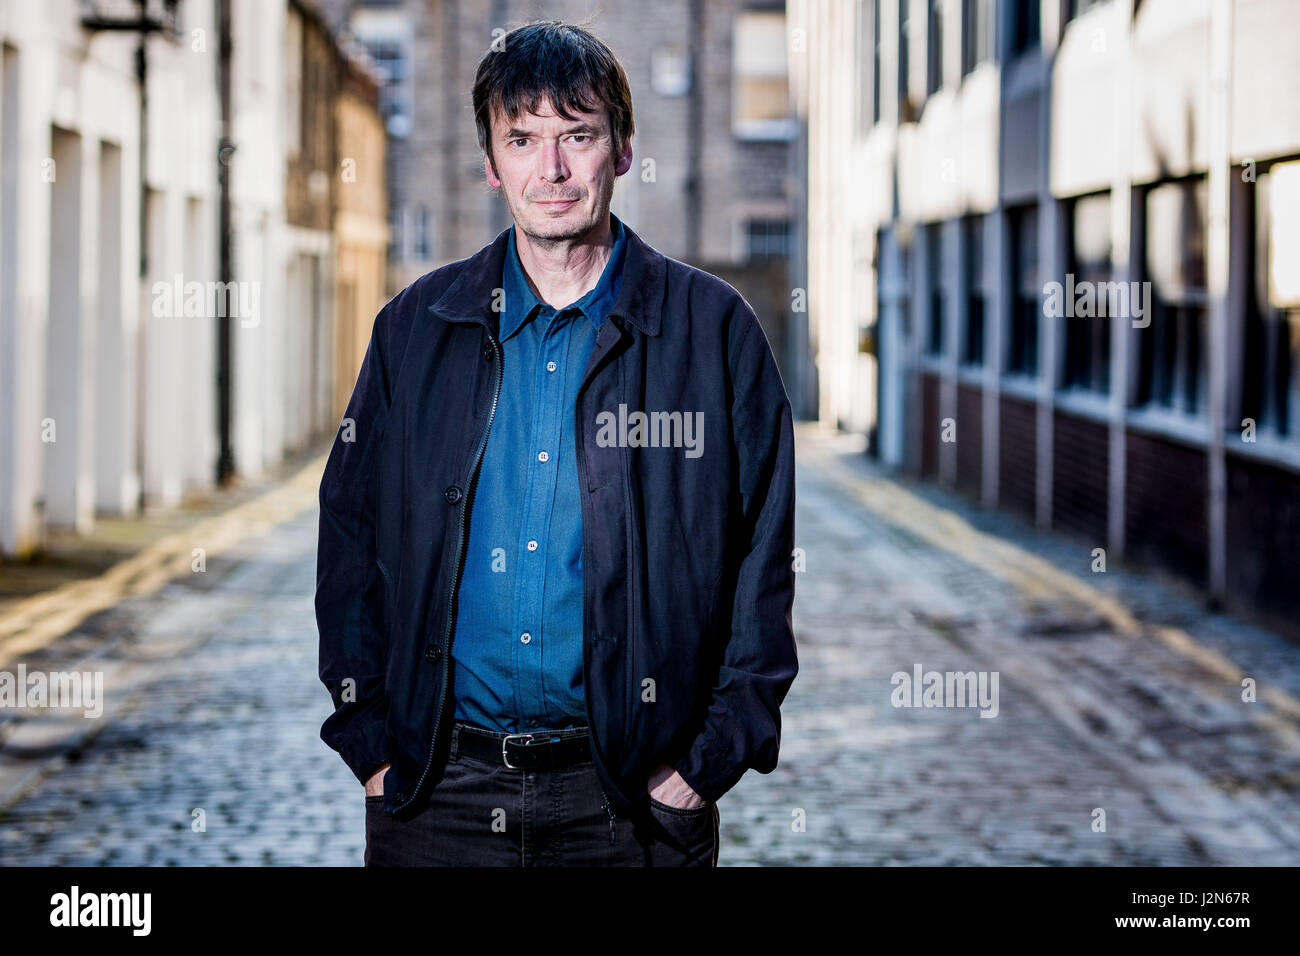 Photographer Ian Georgeson, 07921 567360 Author Ian Rankin, Oxford Bar, Rather be The Devil Stock Photo